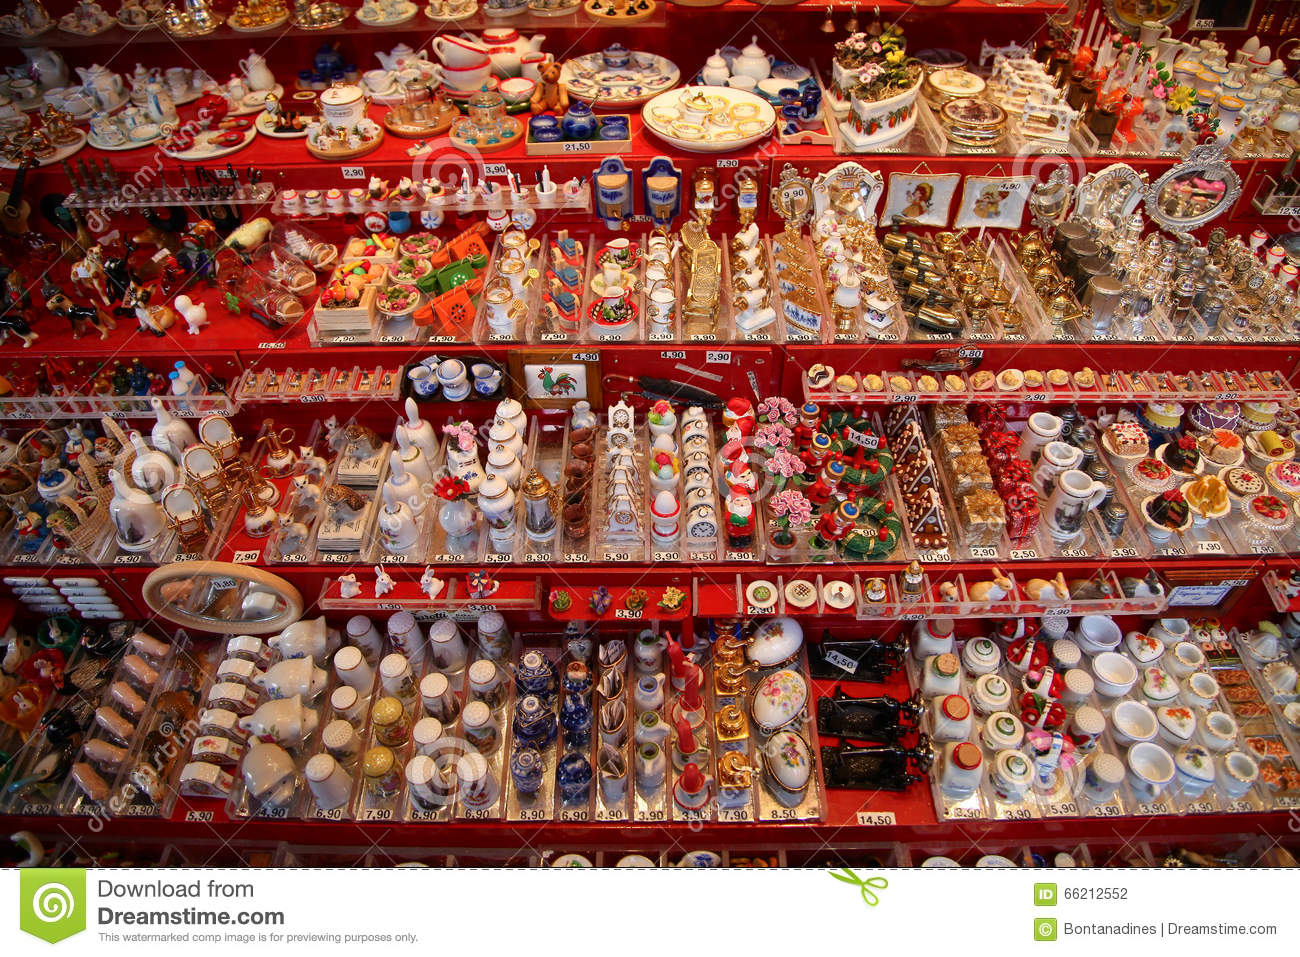 NUREMBERG, GERMANY - DECEMBER 23, 2013: A lot of miniature traditional German toys for doll houses. Nuremberg, Germany